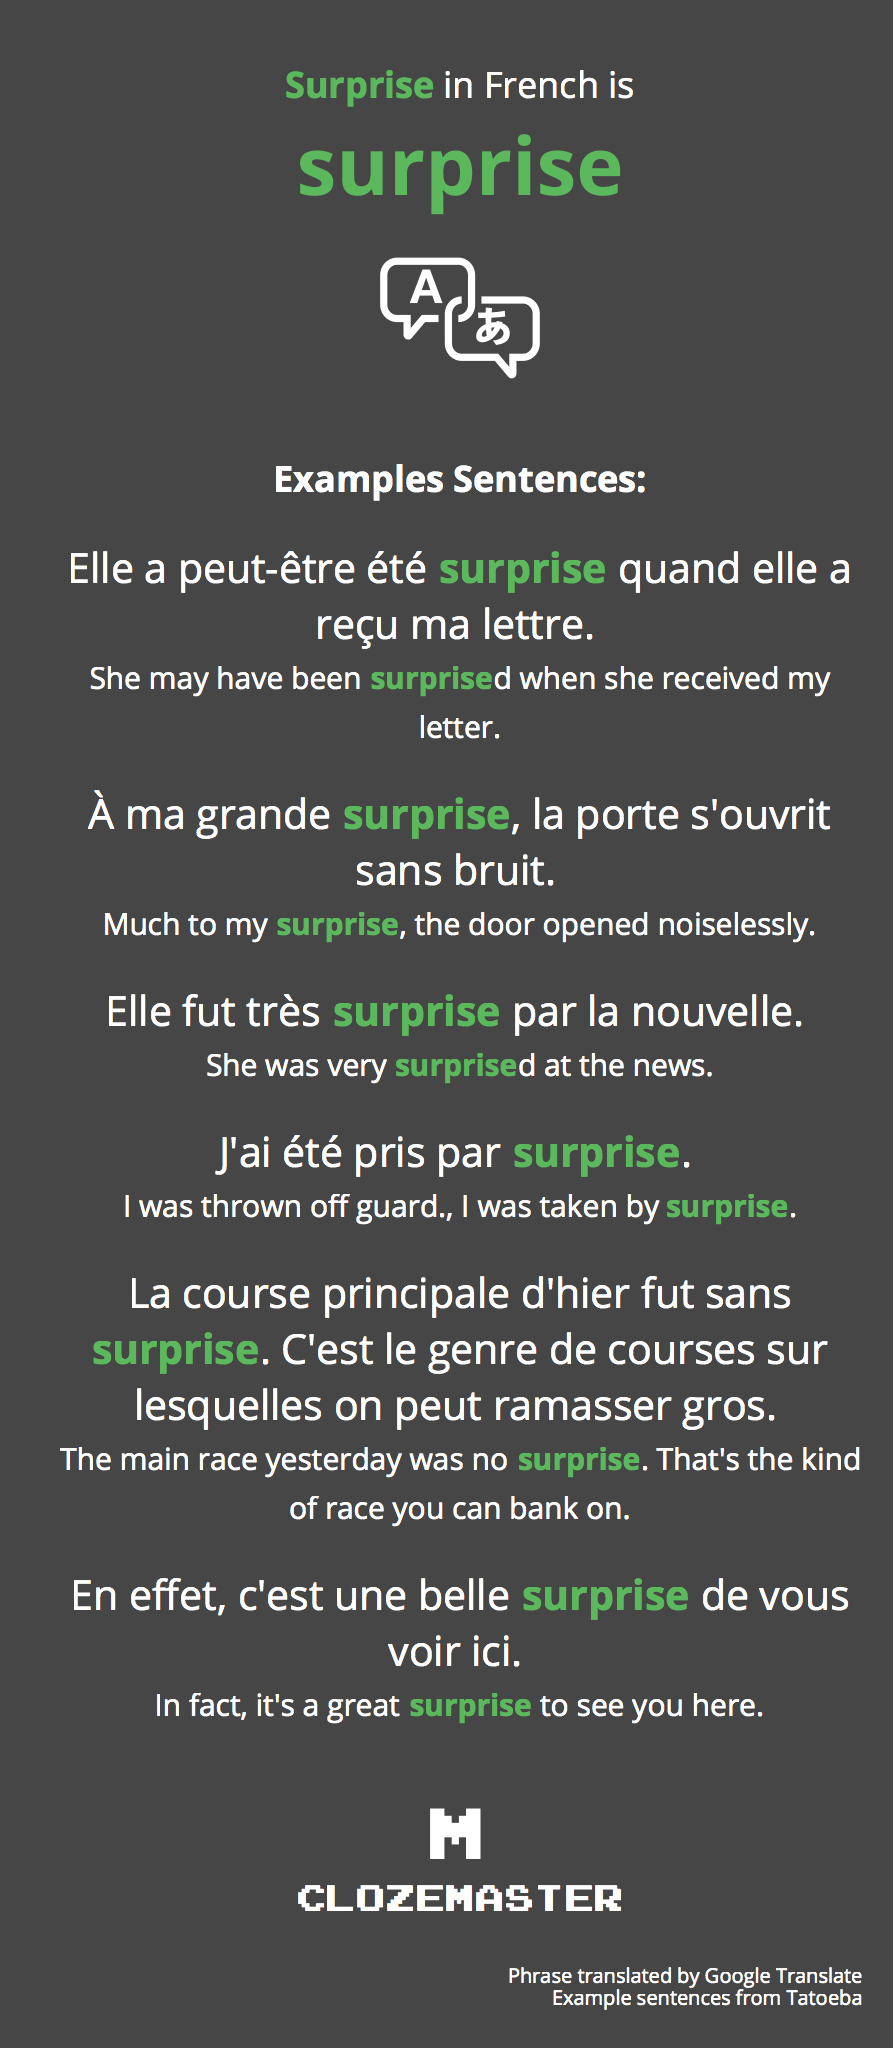 How to say surprise in french clozemaster surprise in french translation and example sentences spiritdancerdesigns Images